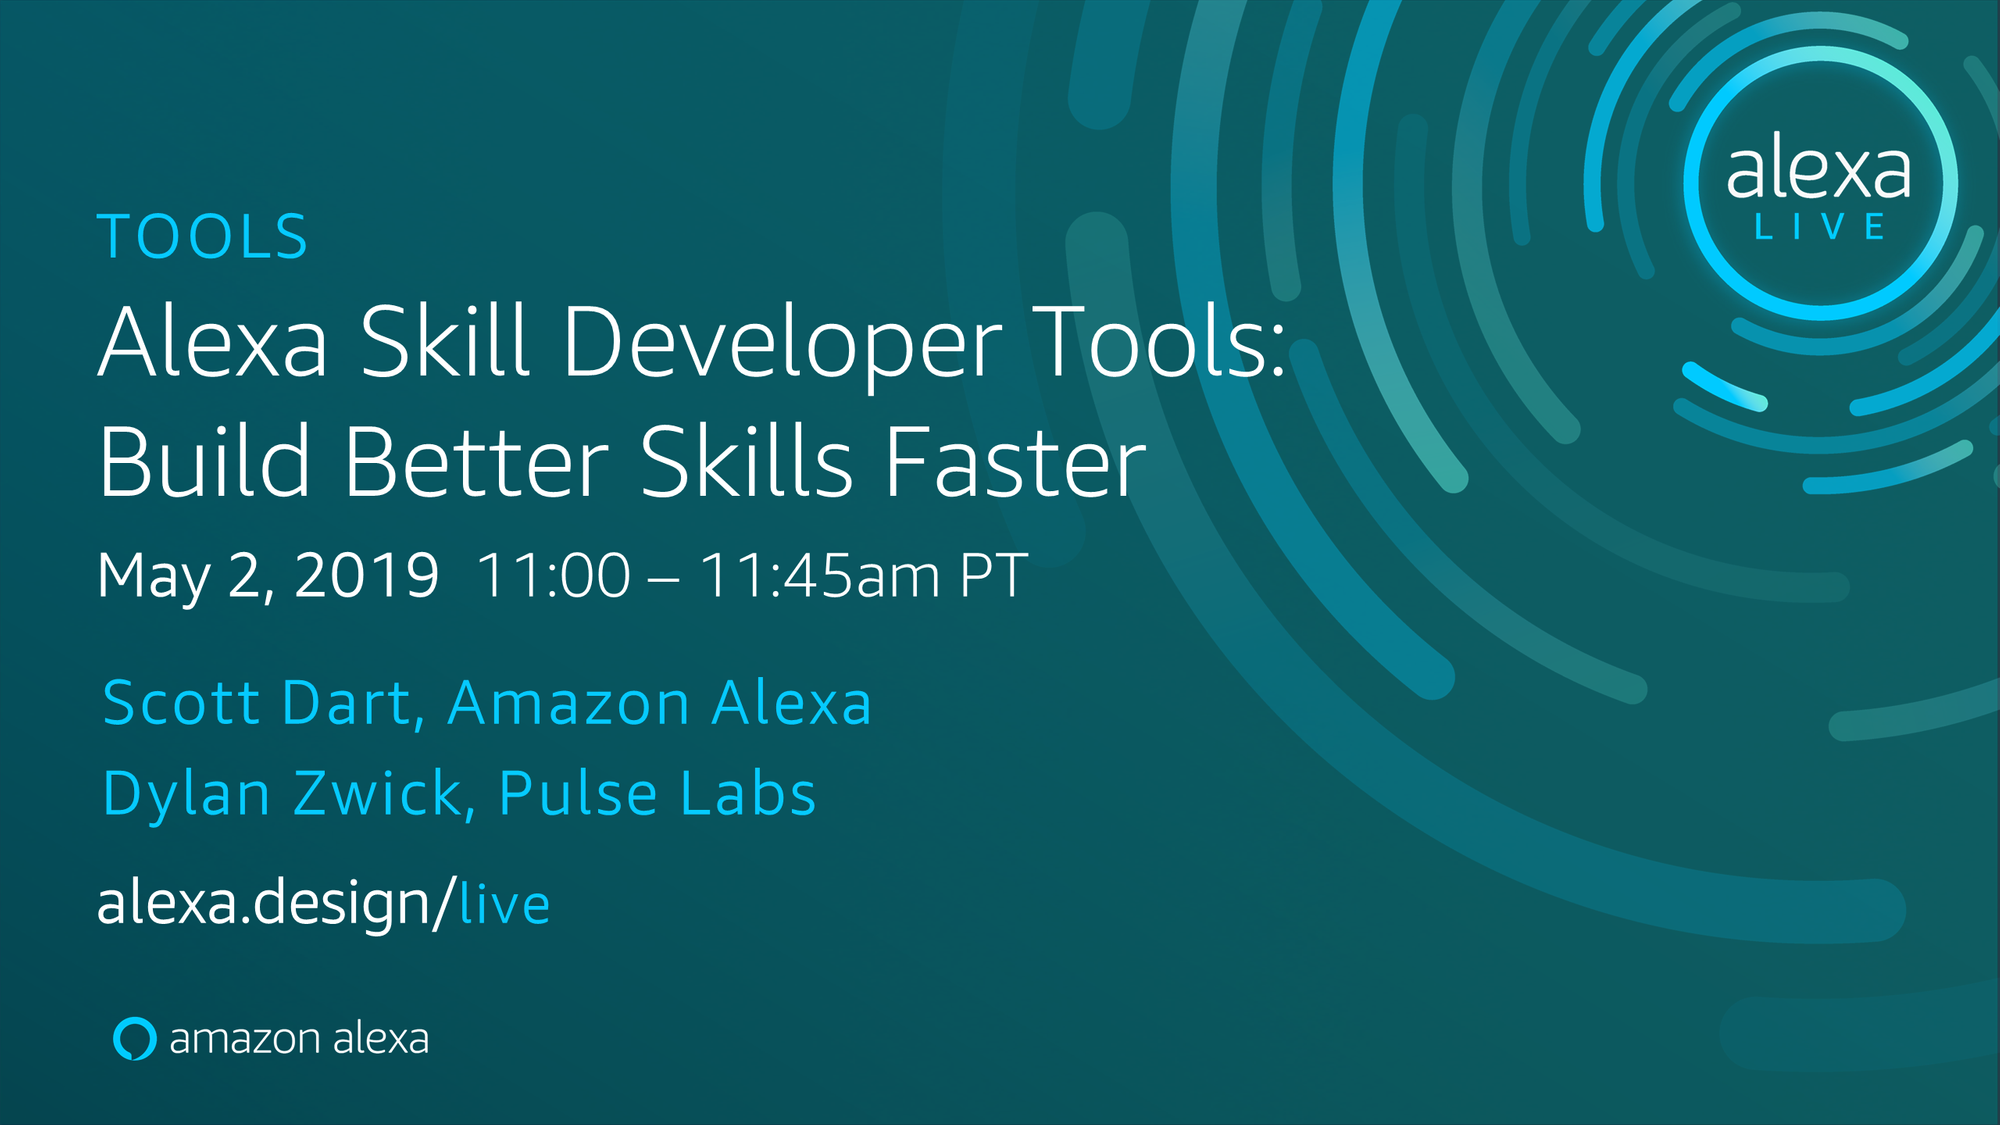 Pulse Labs at Alexa Live on May 2nd!